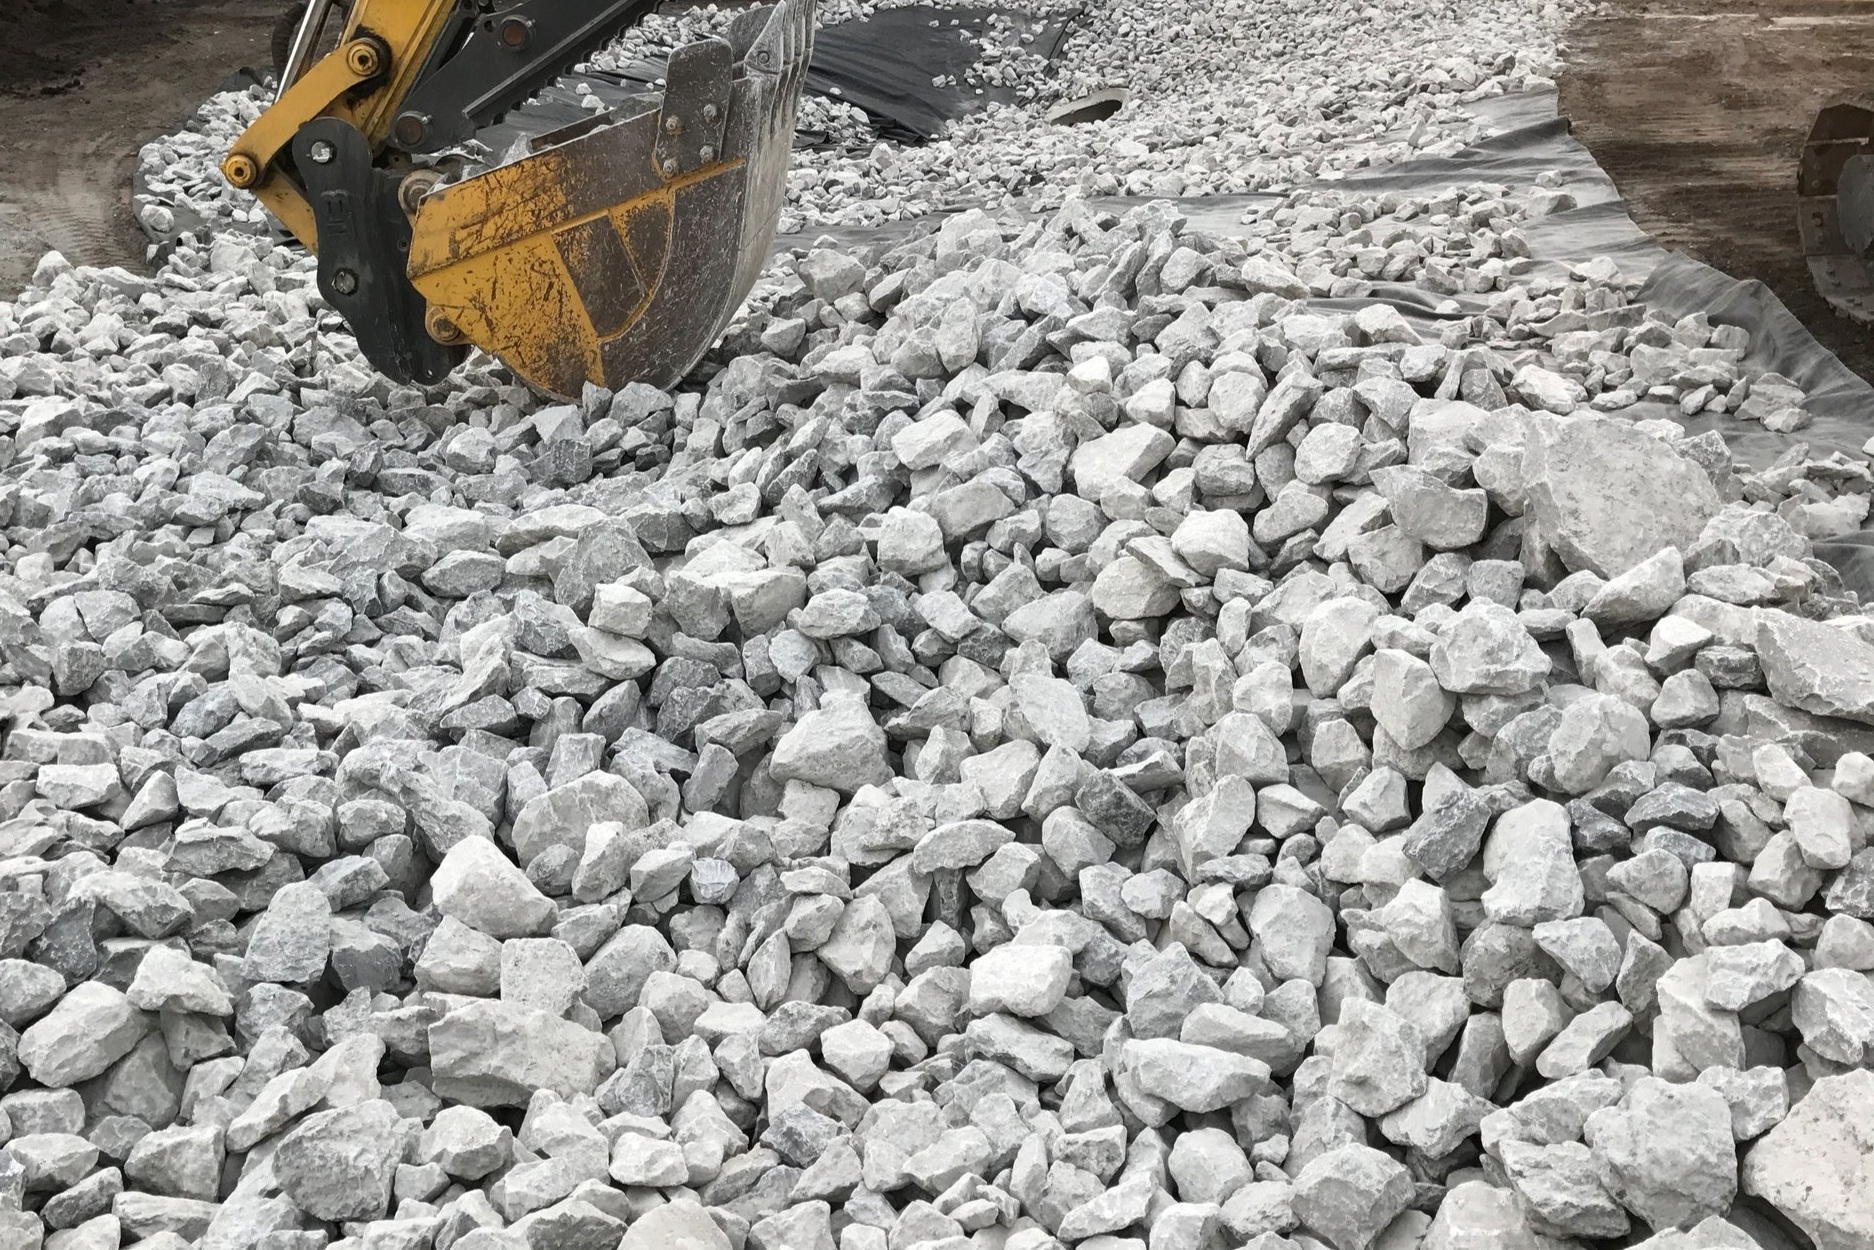 GRAVEL • SAND • TOPSOIL - When you're working on a construction or landscaping project, you don't want your supply of materials to slow you down.